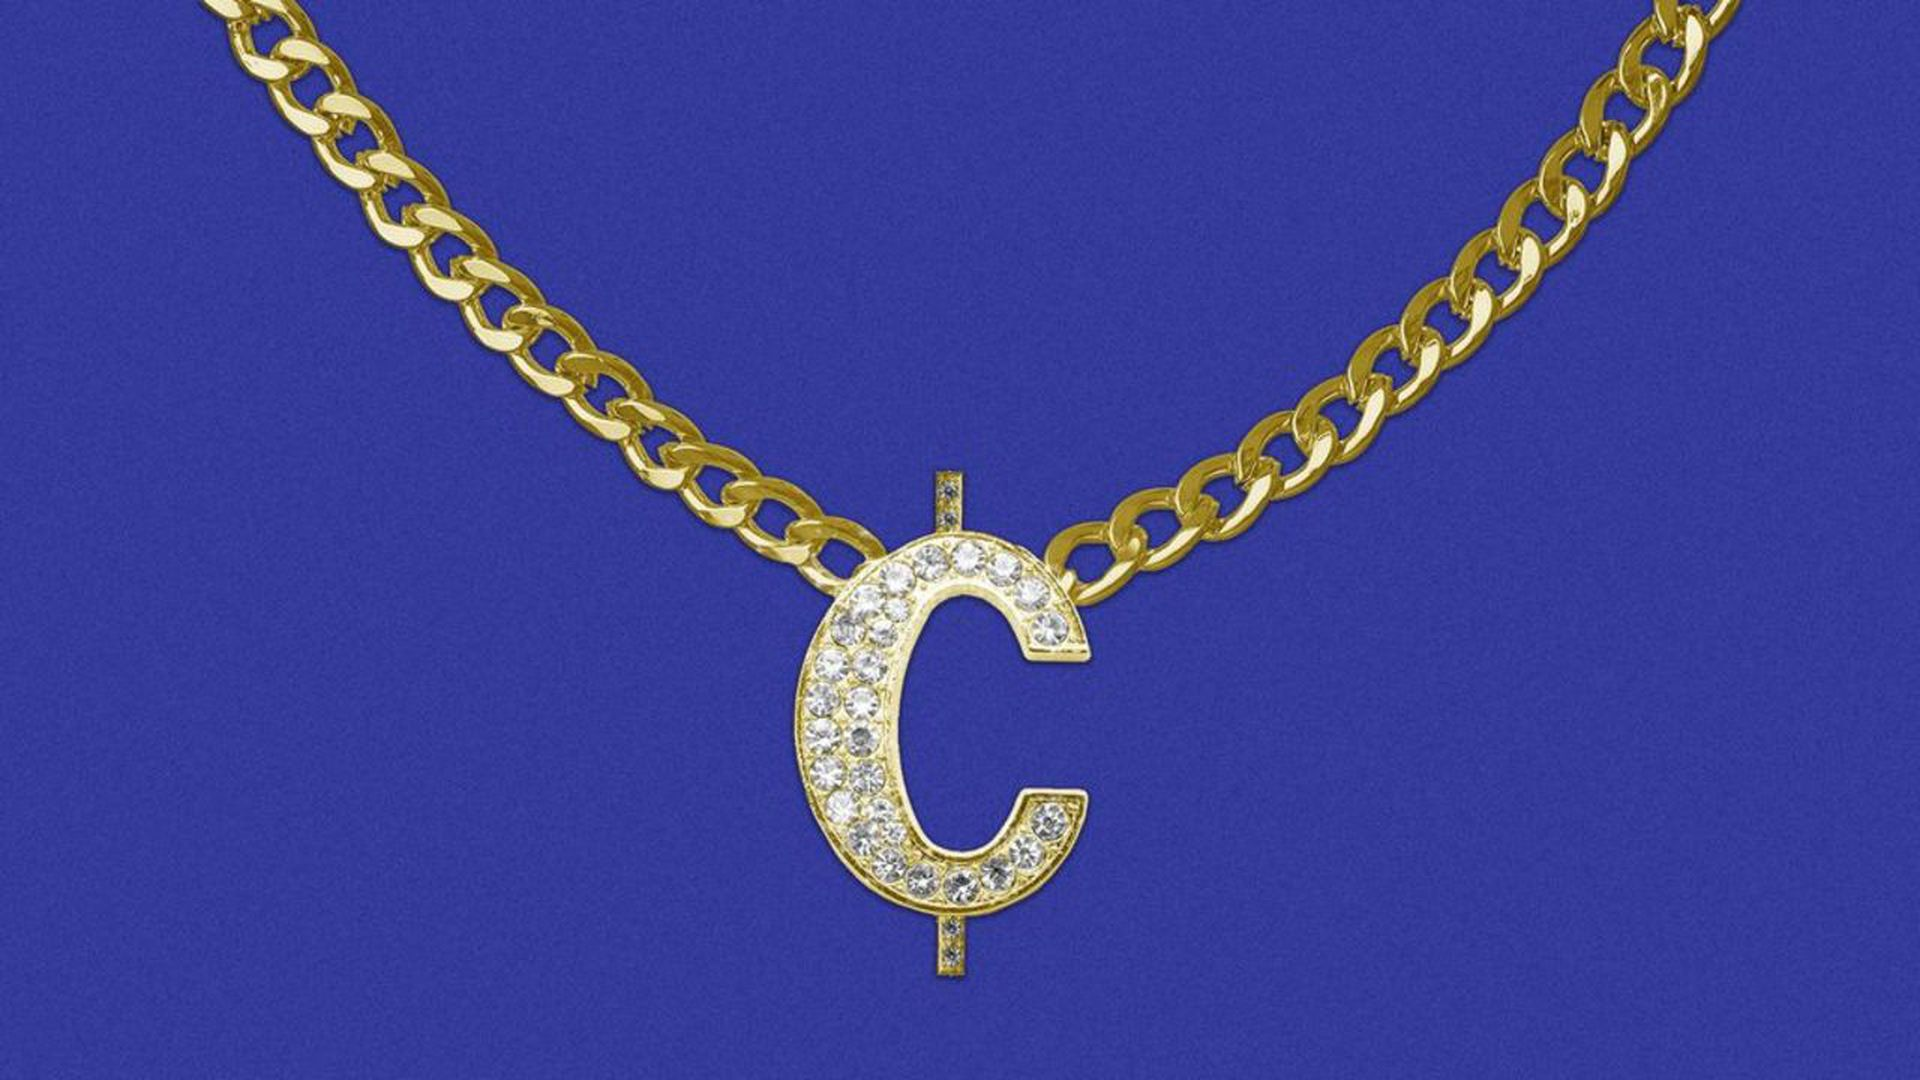 illustration of a necklace with a blinged out cent symbol